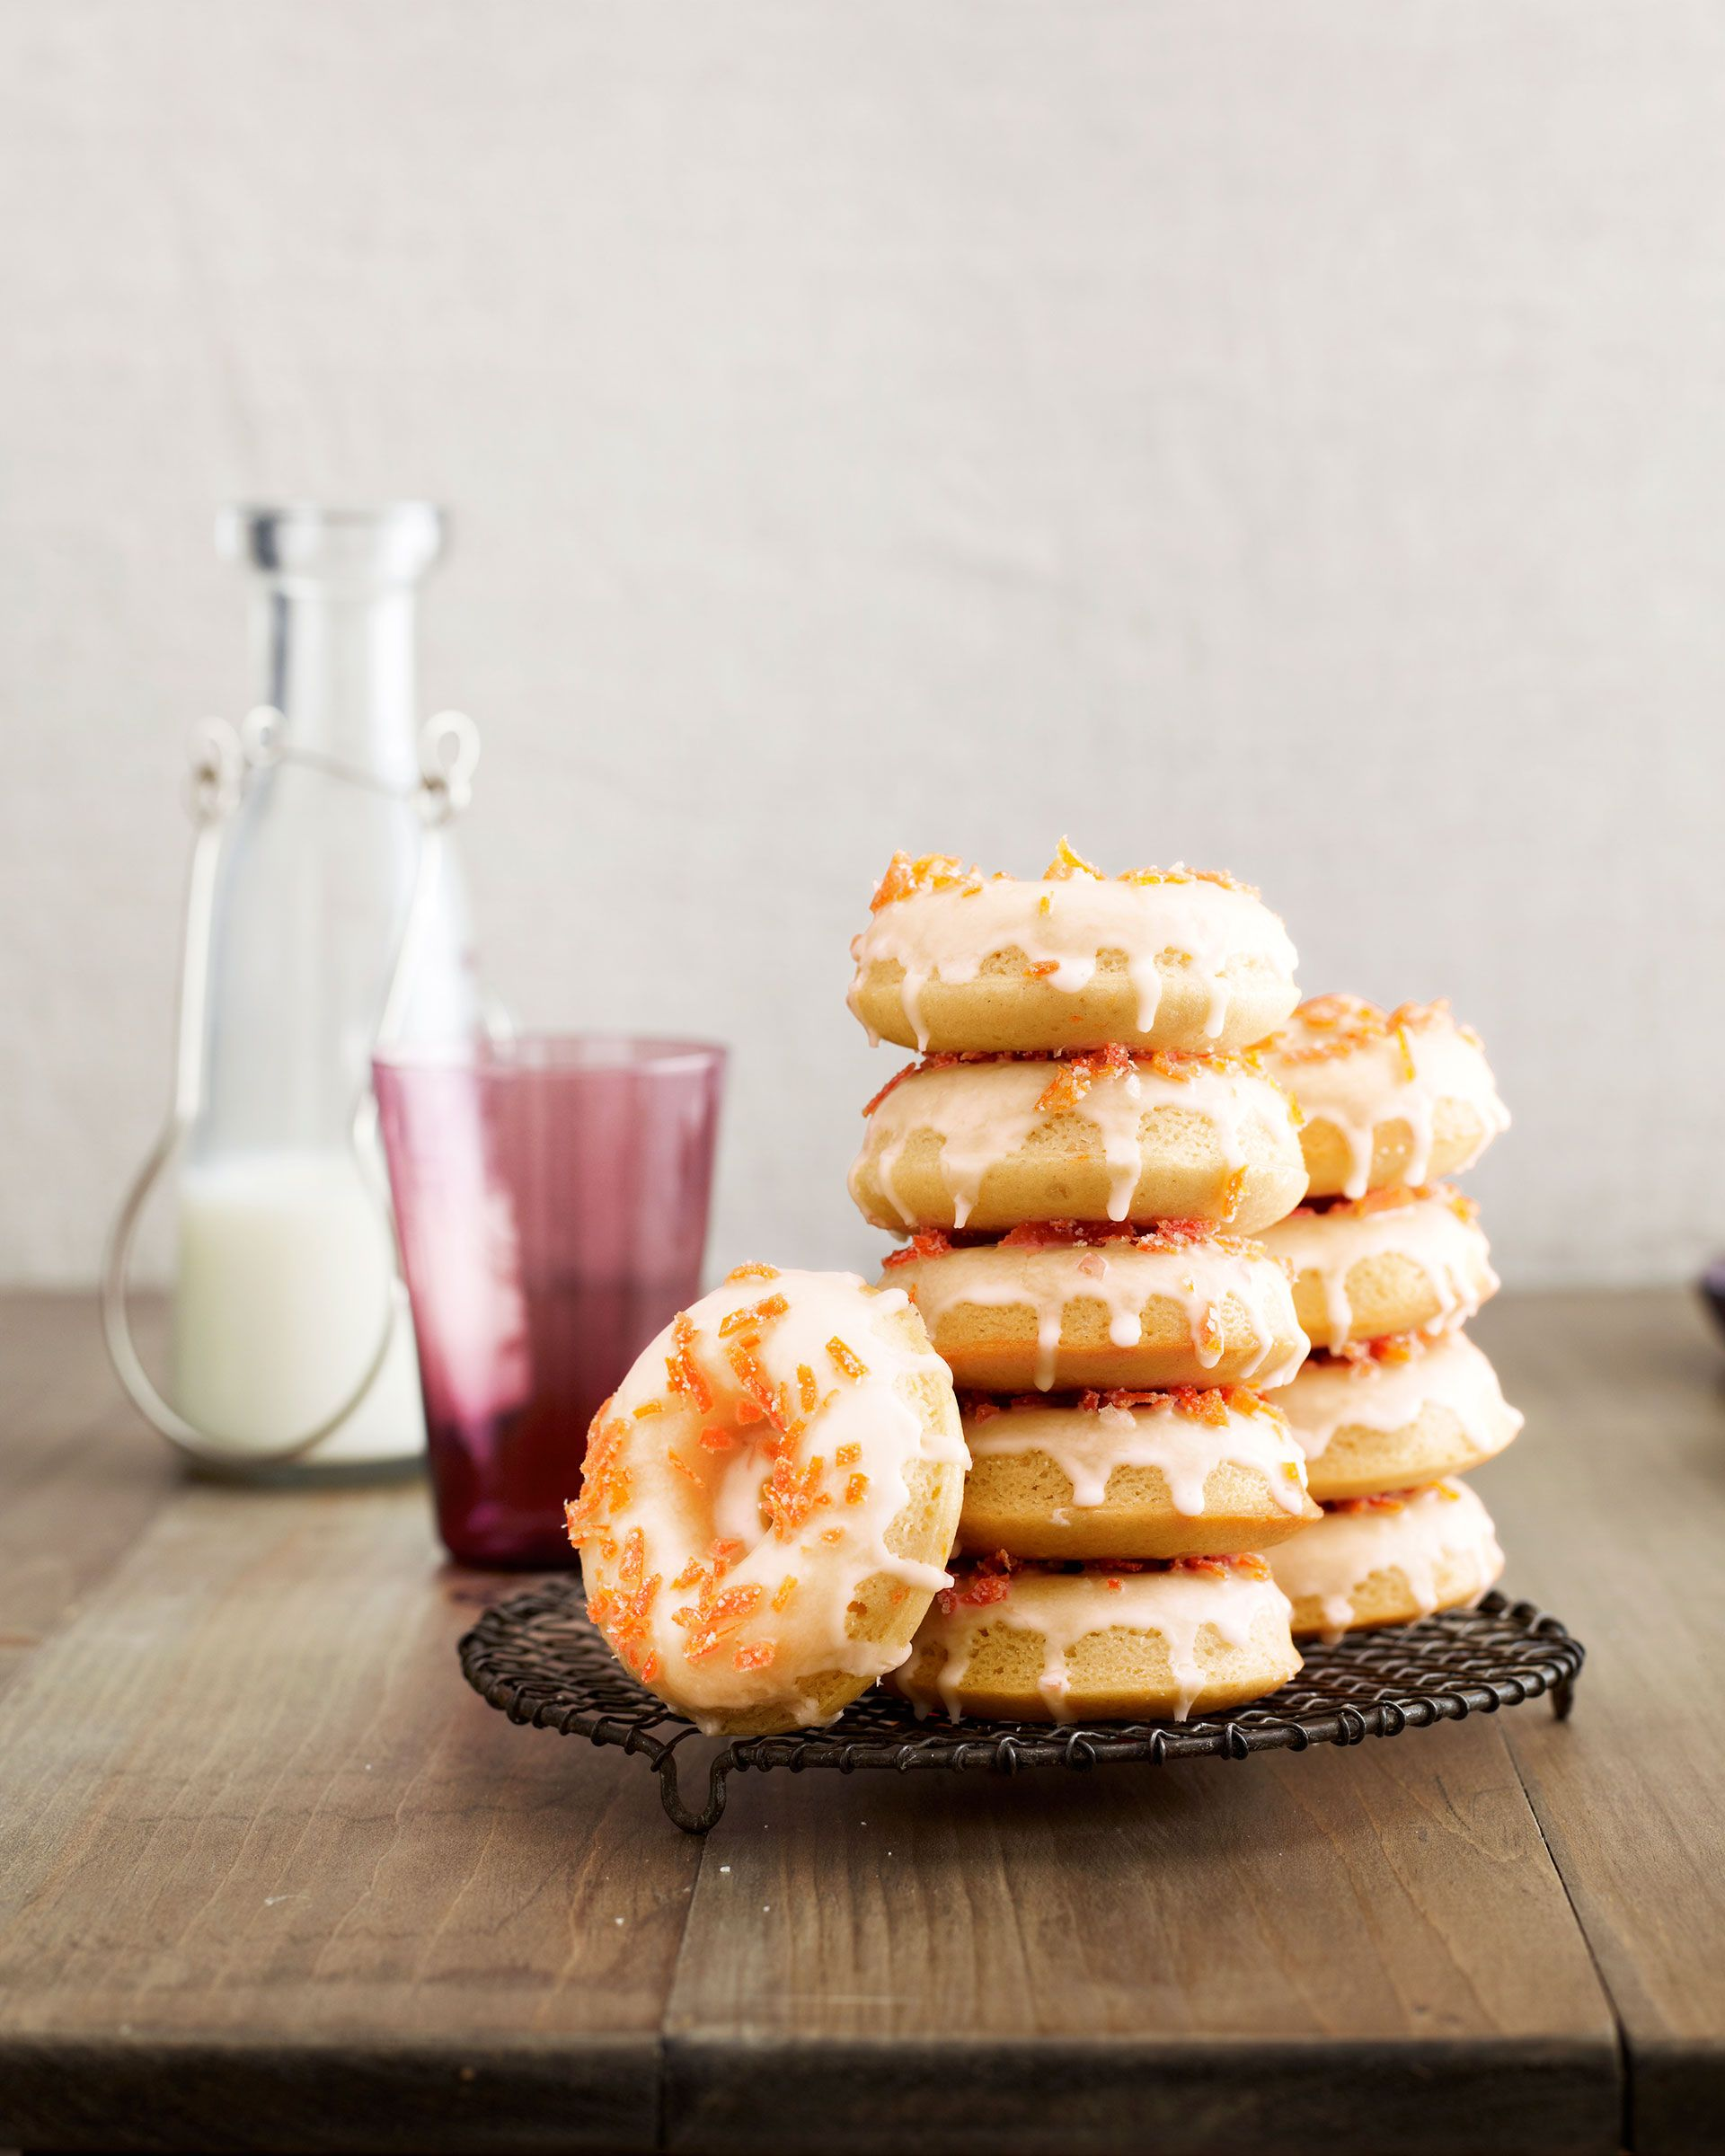 """Tangy buttermilk and tart grapefruit give this classic treat a sophisticated update. <p><br/><strong>Recipe: <a href=""""/recipefinder/grapefruit-buttermilk-doughnuts-candied-zest-recipe-clv0214?click=recipe_sr"""" target=""""_blank"""">Grapefruit Buttermilk Doughnuts with Candied Zest</a></strong></p>"""